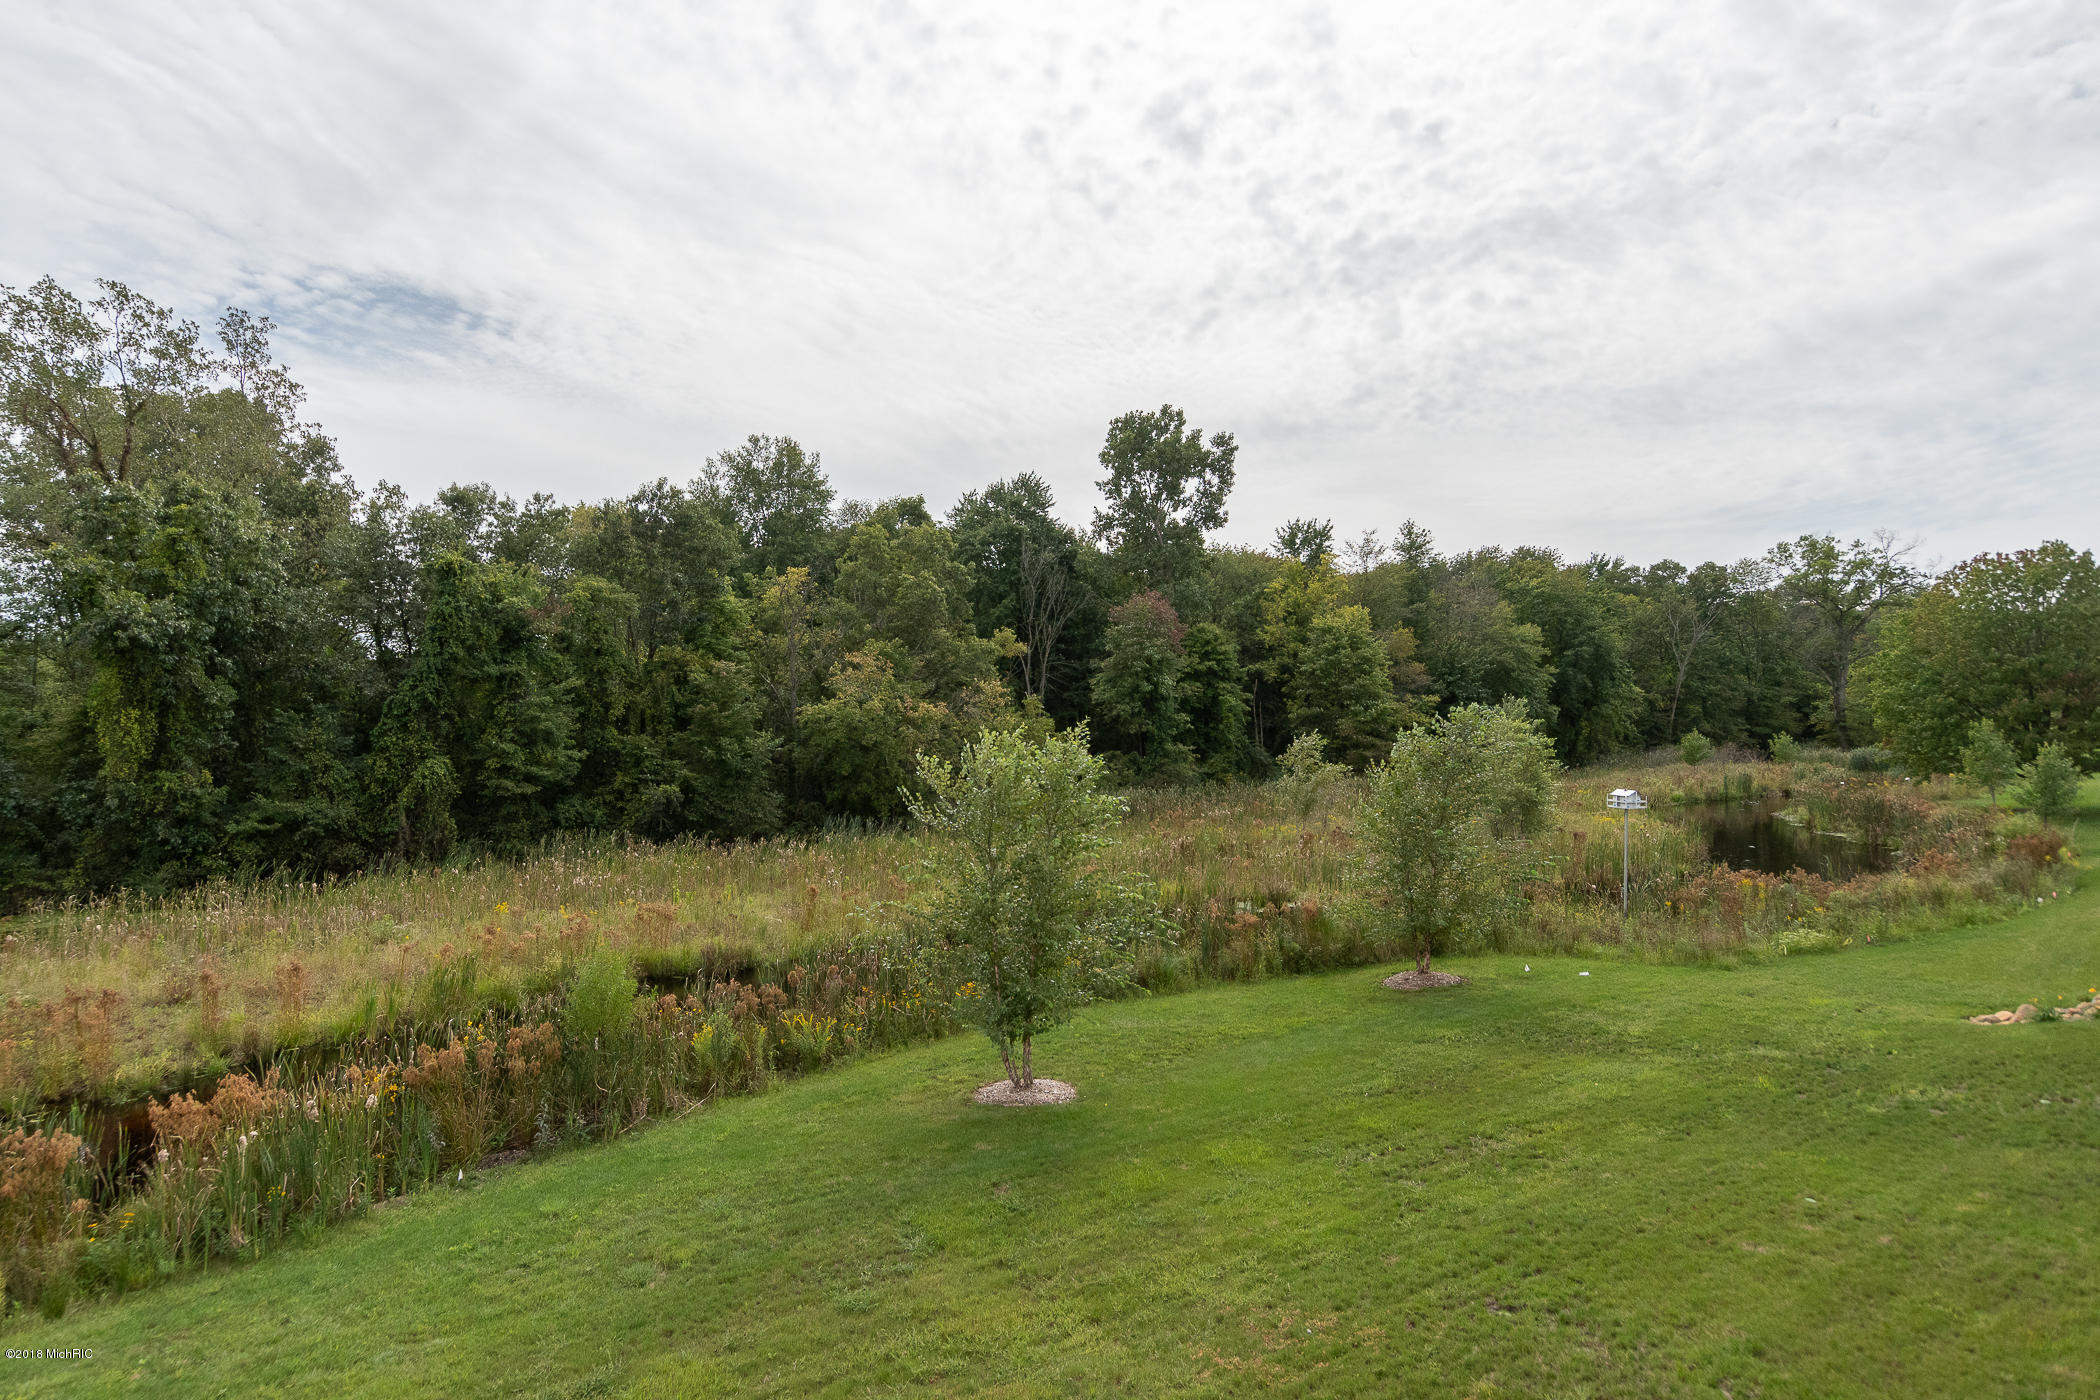 2213 Hollow Creek Trail, Portage, MI 49024